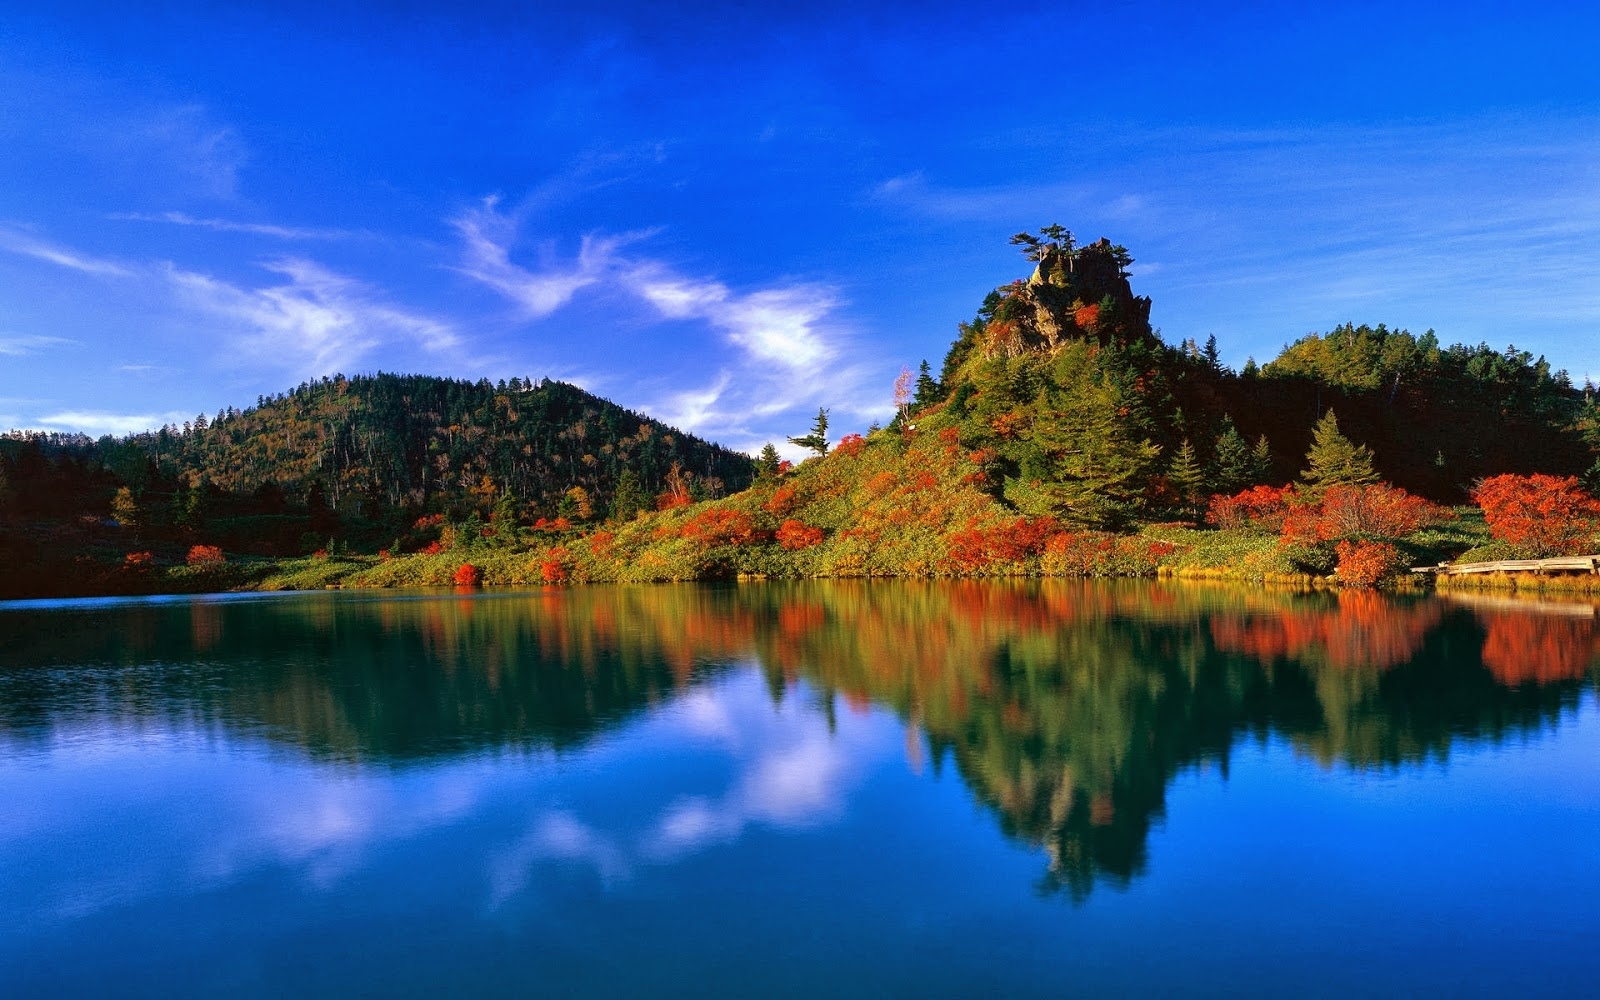 full hd nature wallpaper download,reflection,nature,sky,natural landscape,water